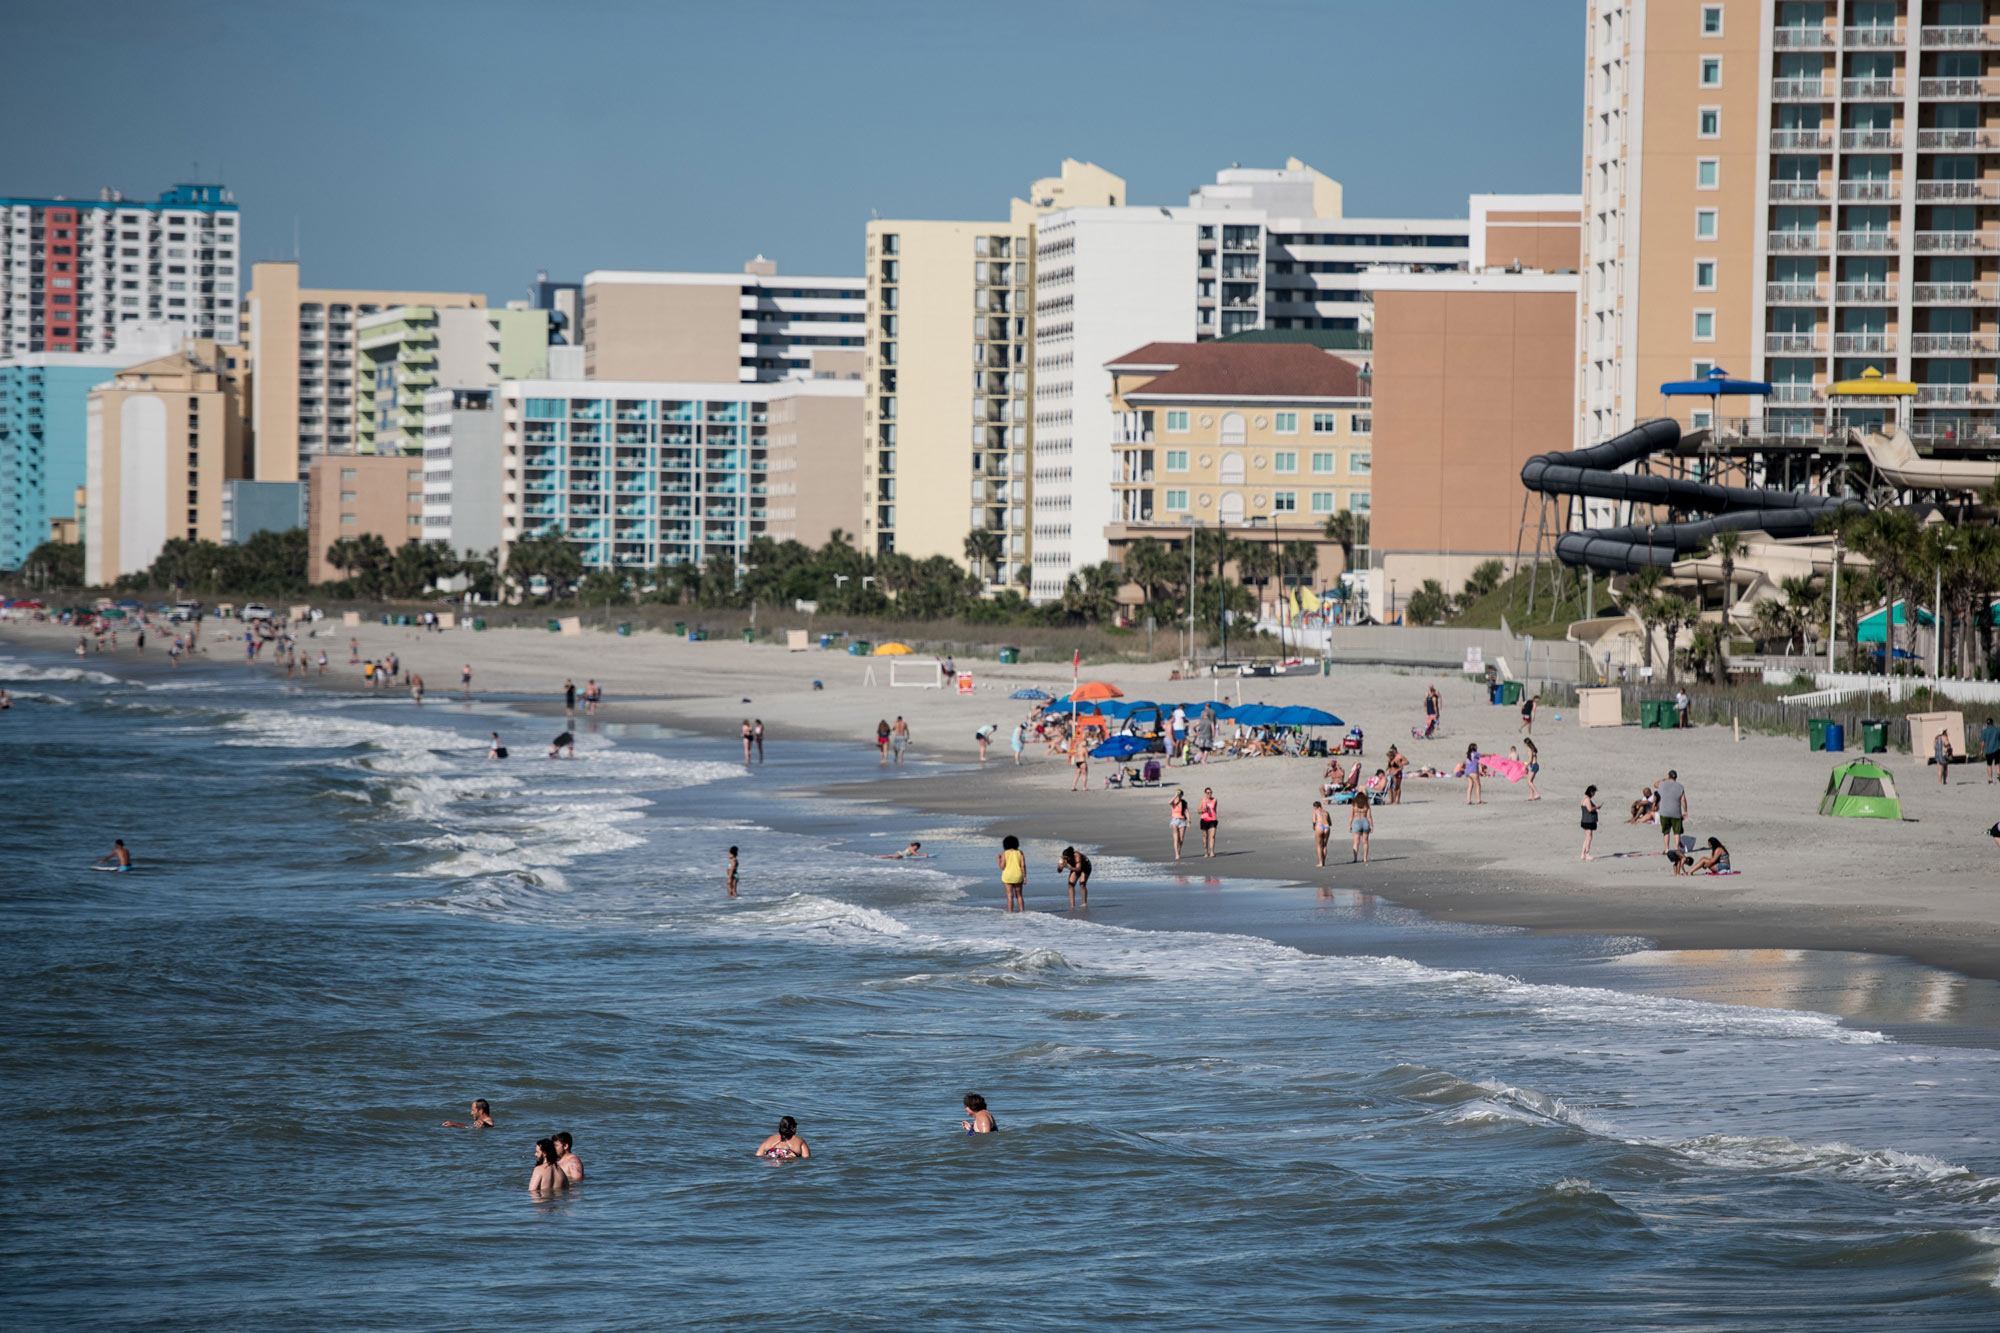 People wade in the surf on the morning of May 23 in Myrtle Beach, South Carolina.